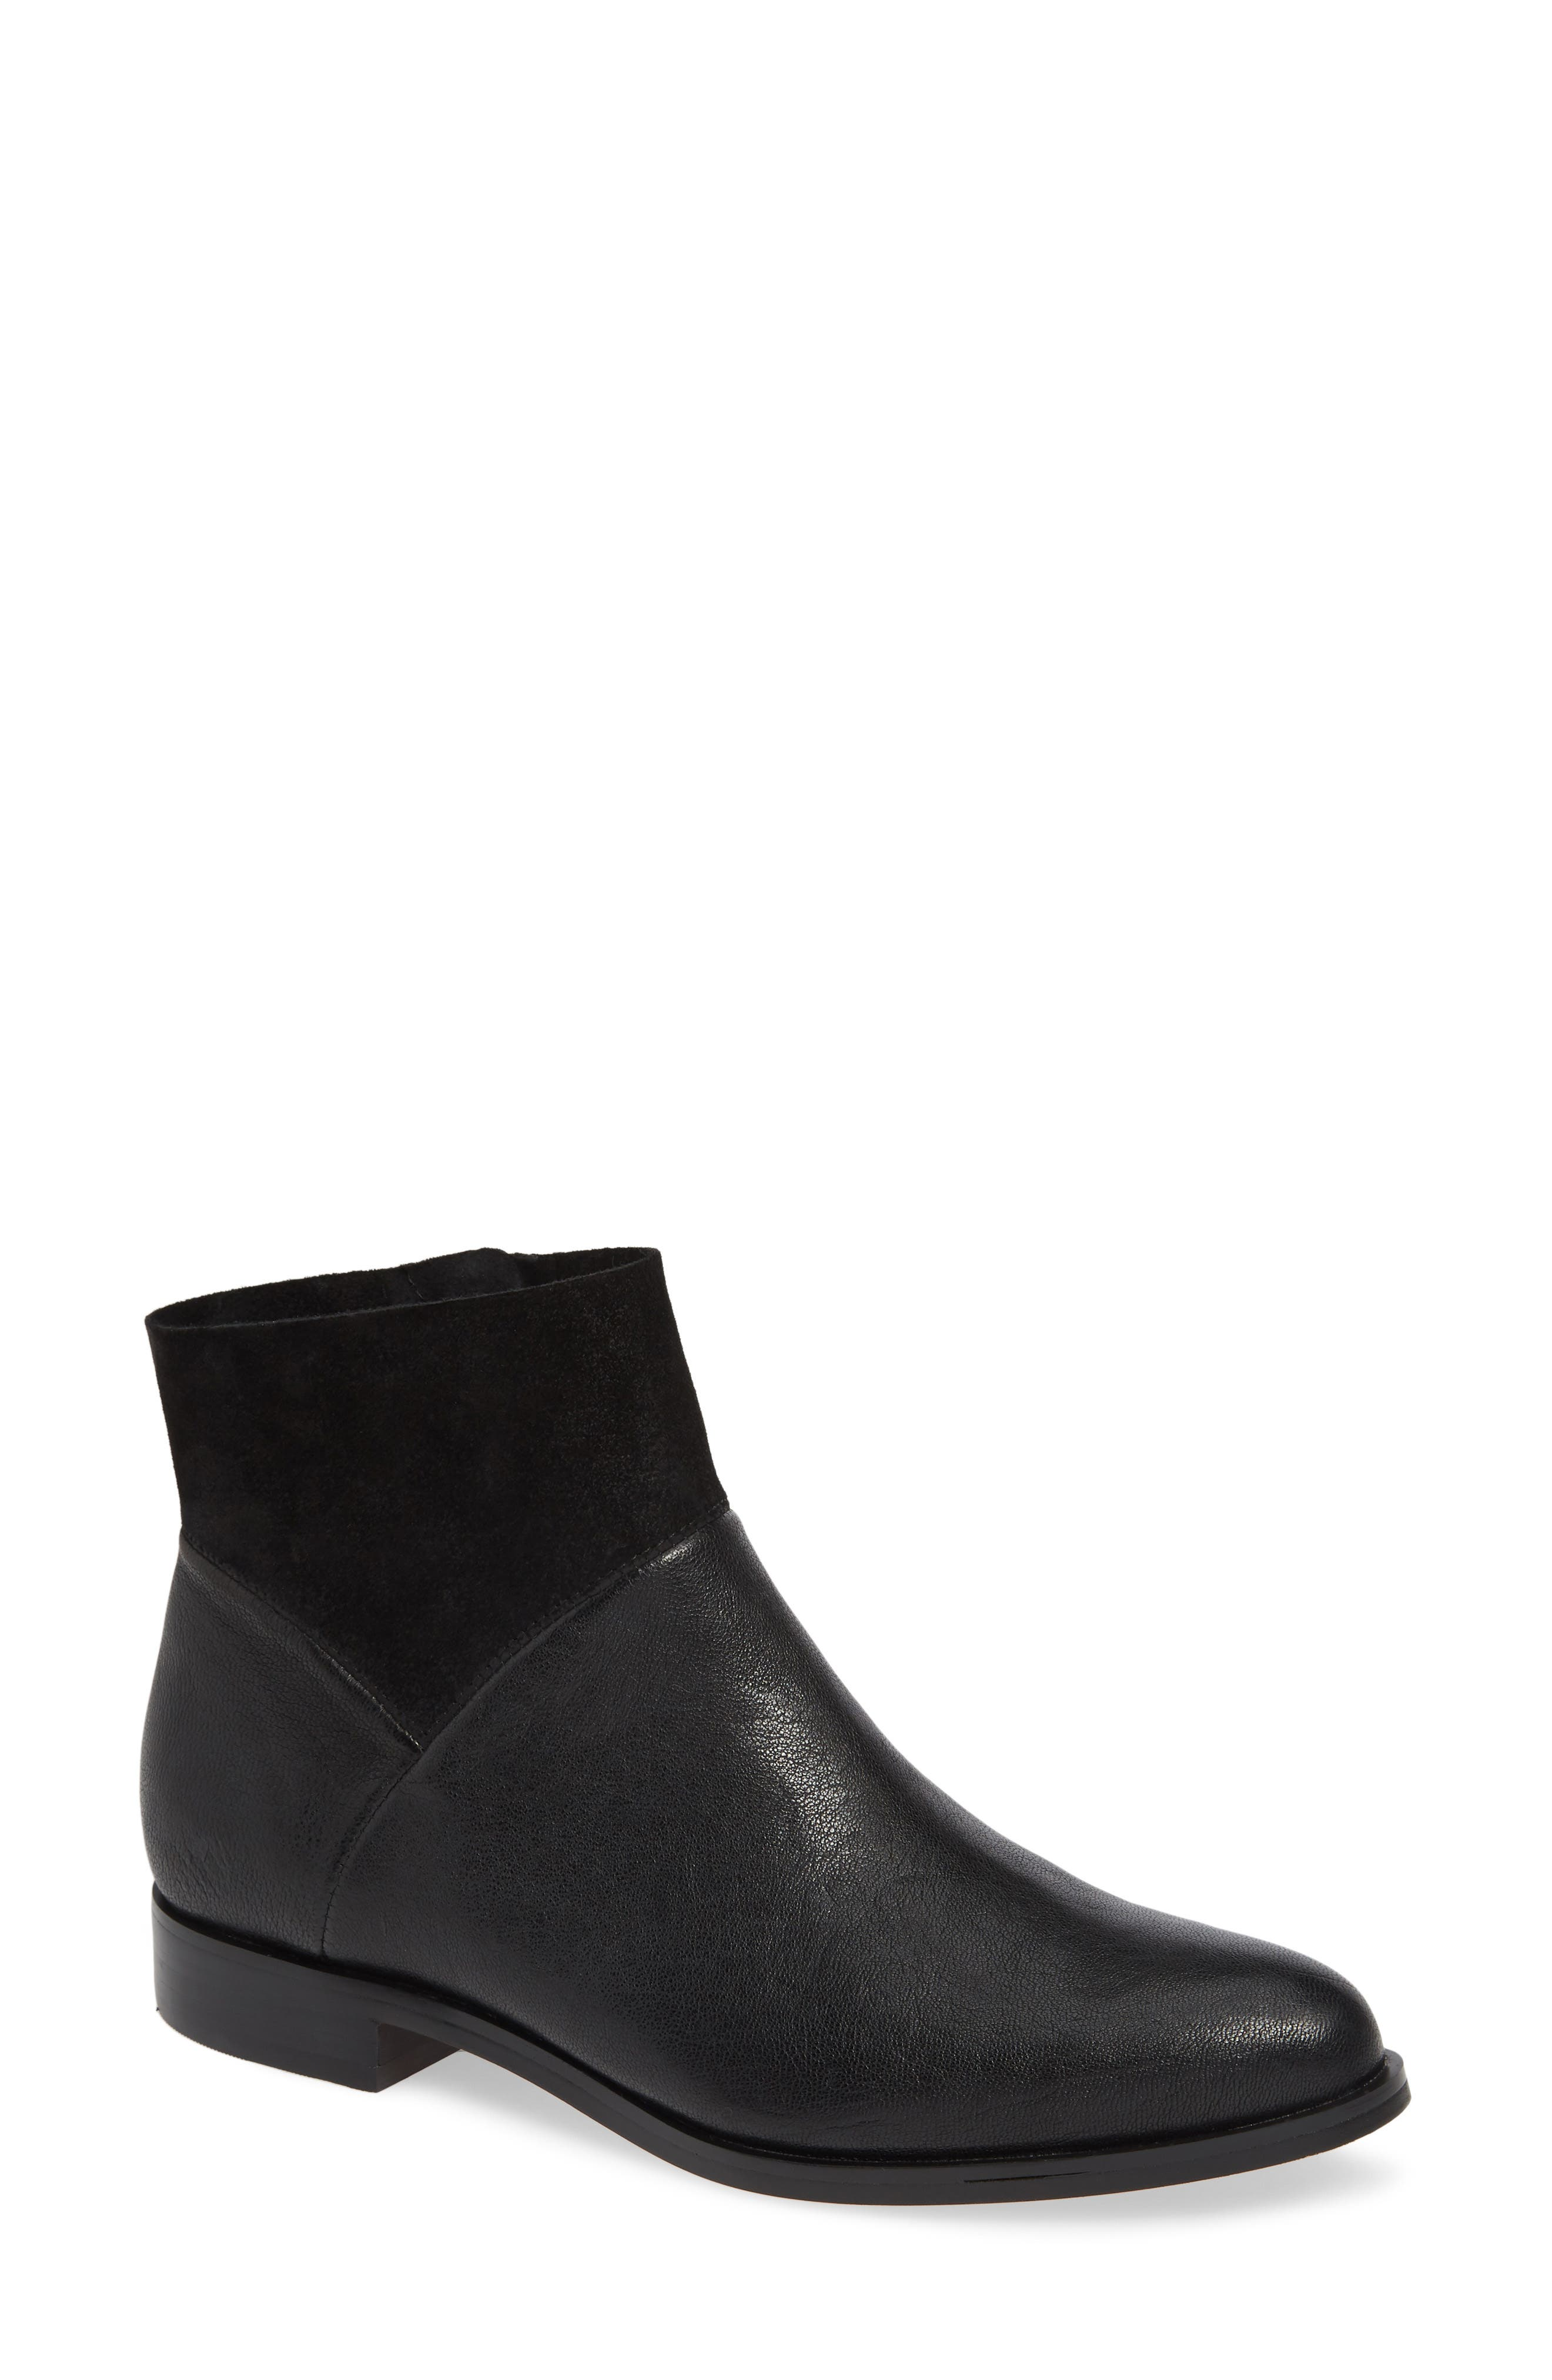 ISOLÁ Isola Mosina Bootie, Main, color, BLACK LEATHER